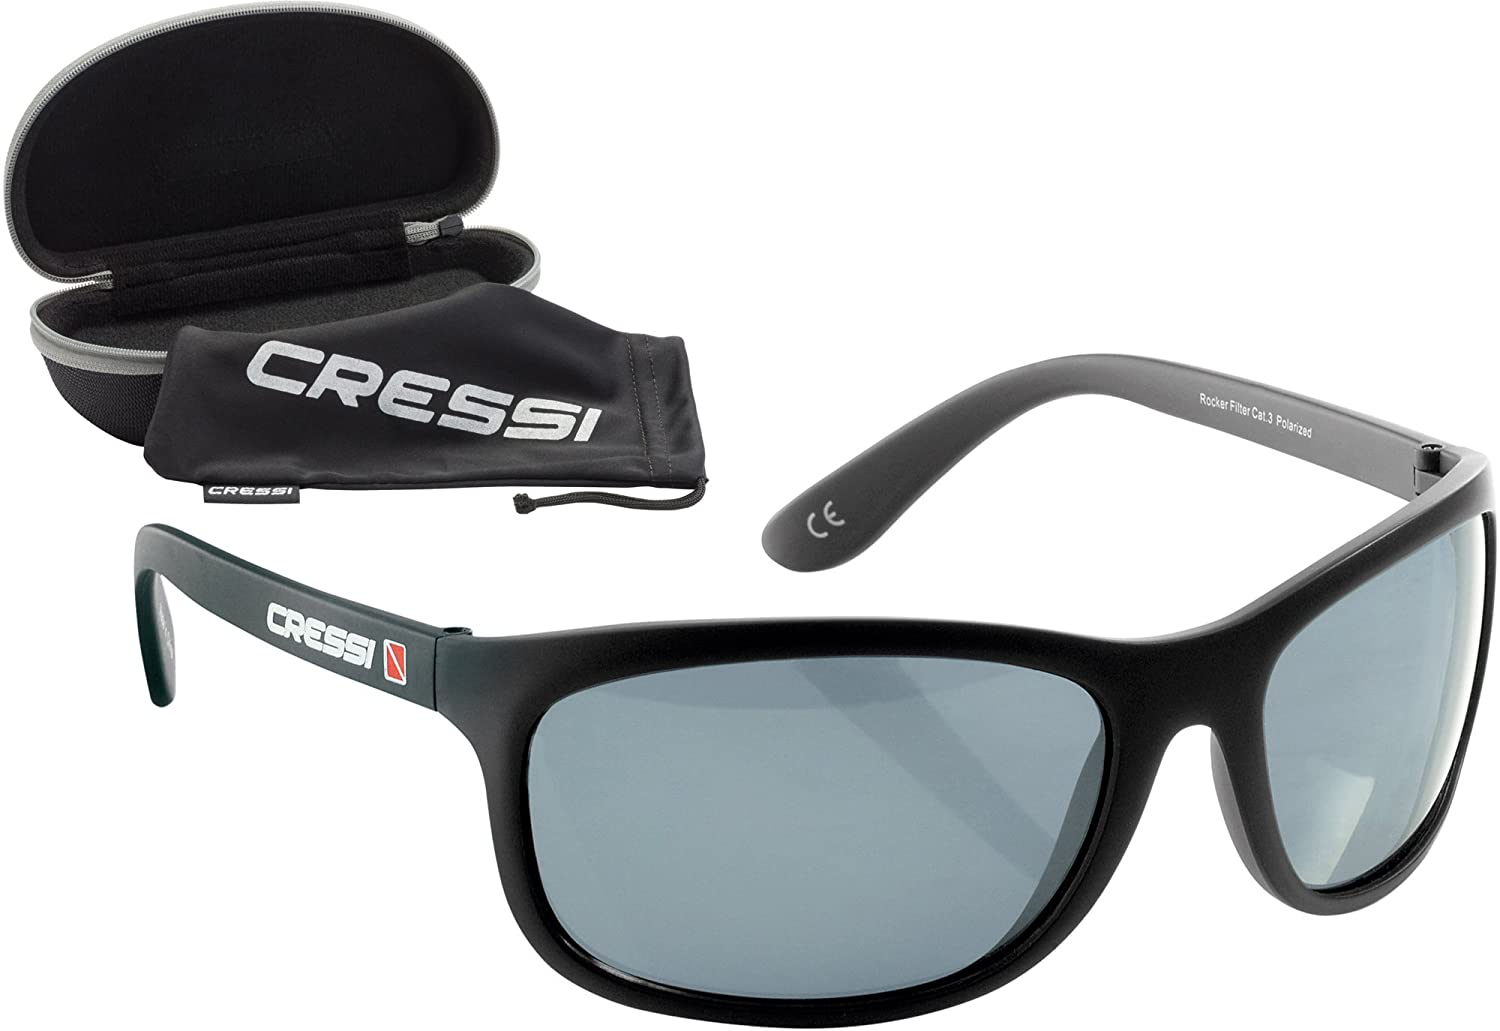 Cressi Premium Sunglasses Shatterproof Polarized Lenses with 100% UV Protection Black/Grey Lens XDB100133